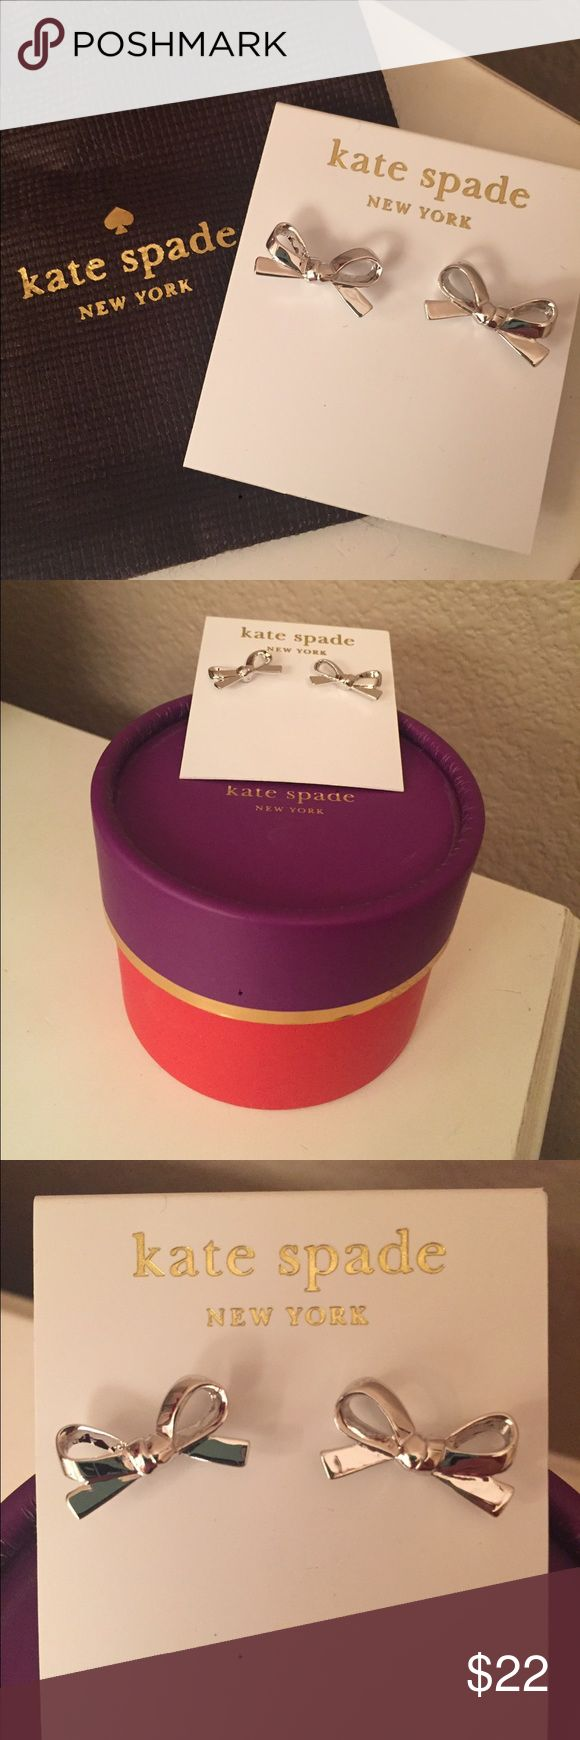 Kate Spade Bow Earrings in Silver Adorable Kate Spade bow earrings, never worn! Comes with gift box. 14K gold fill. Kate Spade Jewelry Earrings